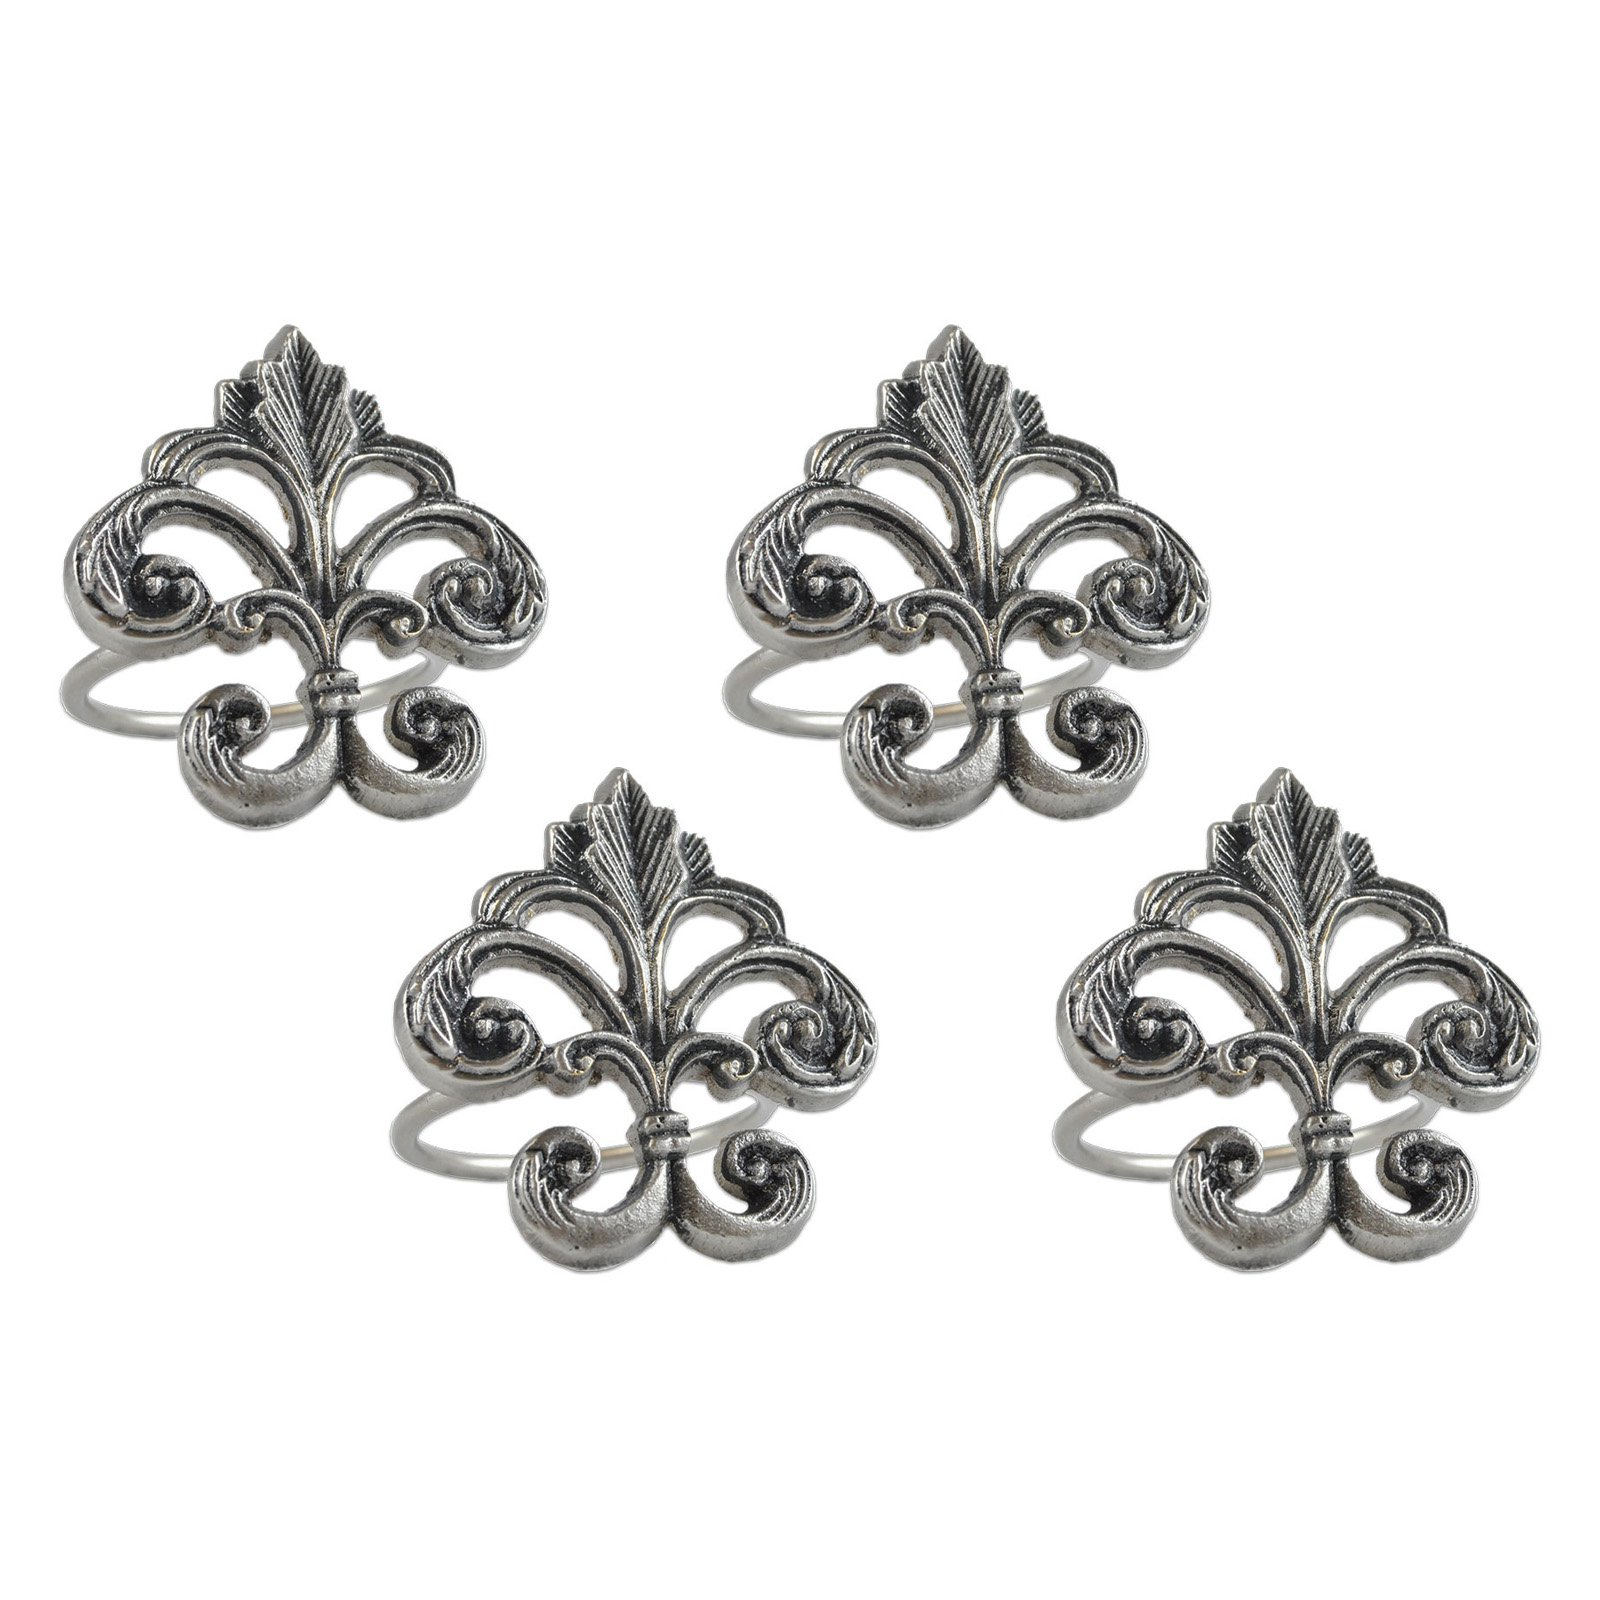 Fleur De Lis Napkin Ring Set of 4